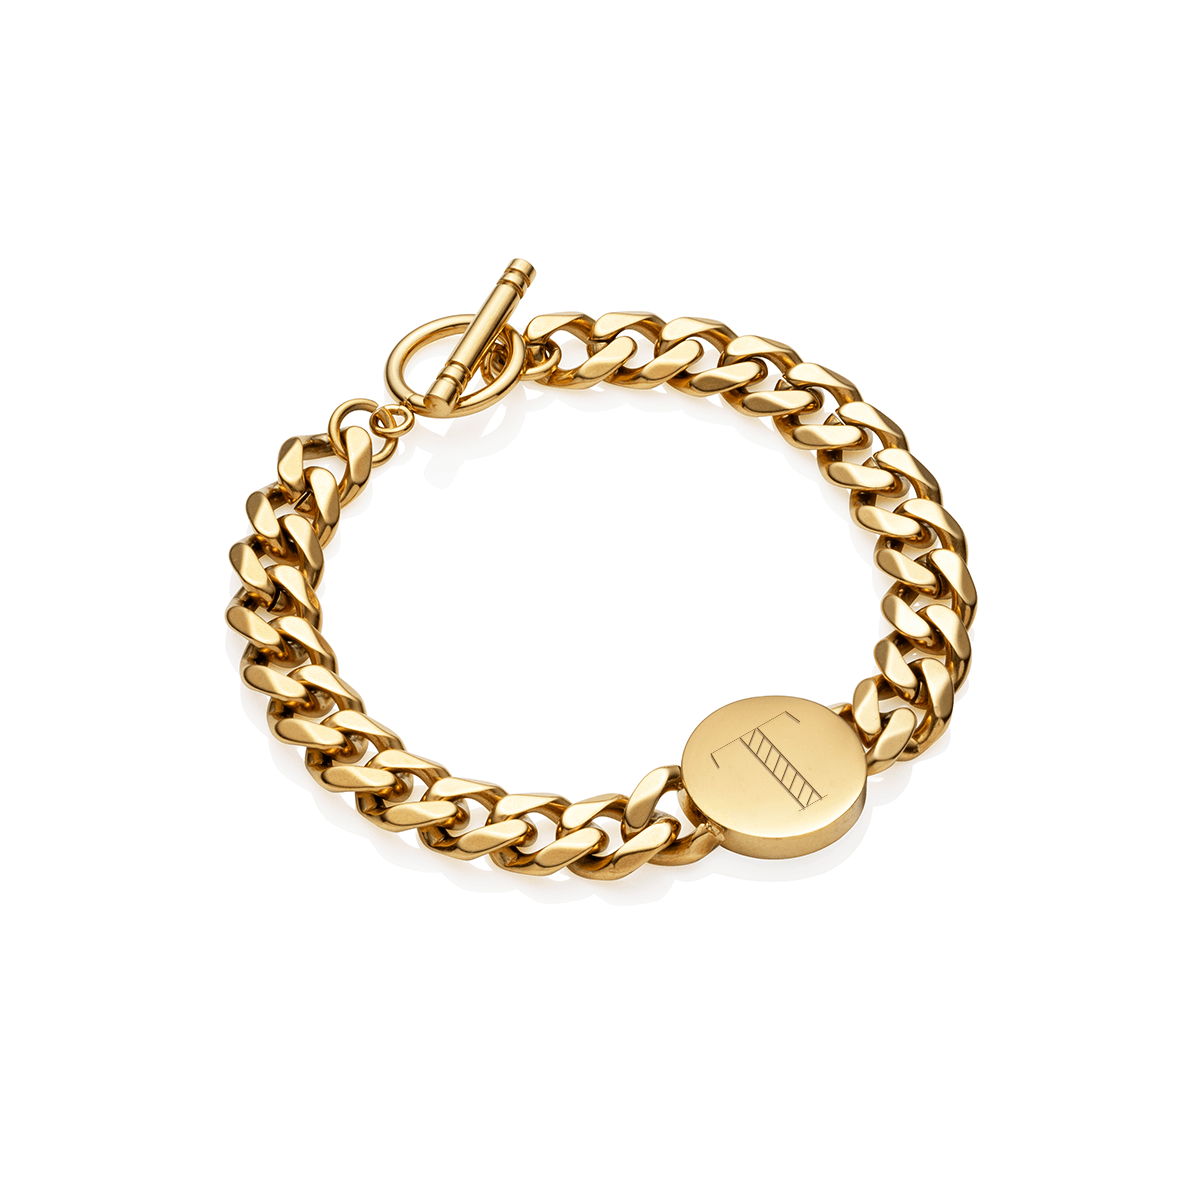 Circular Curb Chain Personalise Bracelet (Gold)